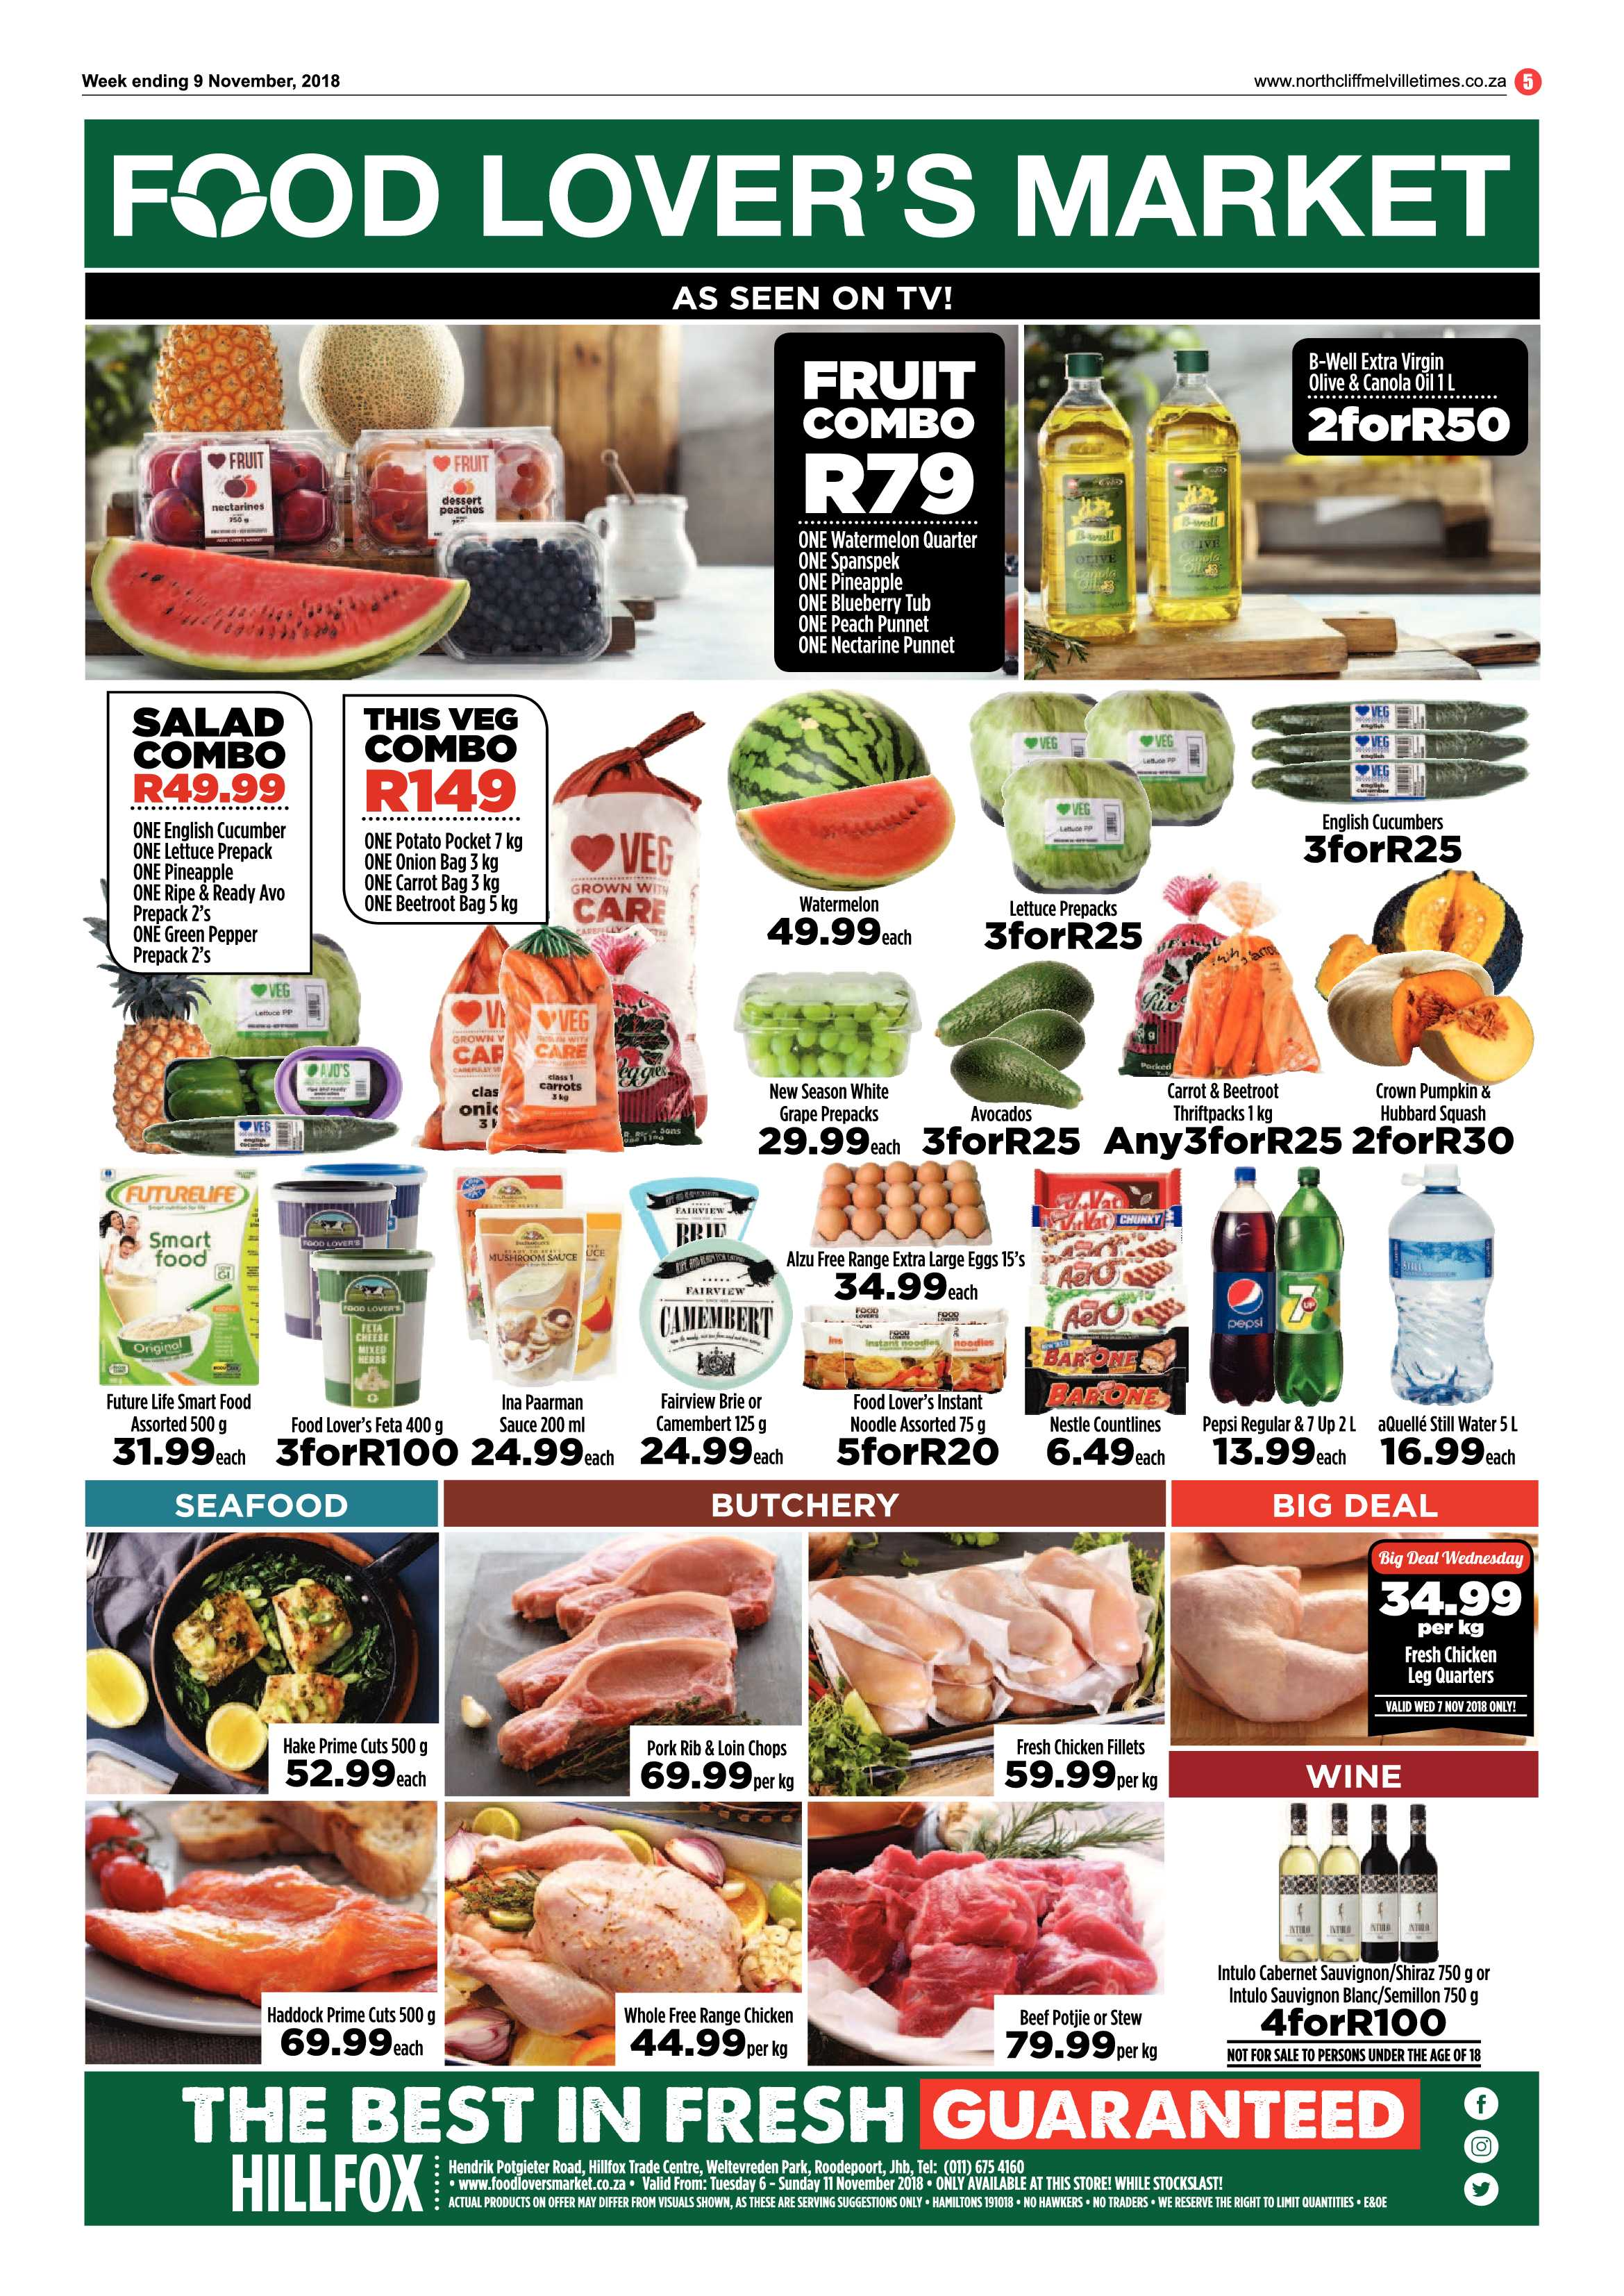 northcliff-melville-times-9-november-2018-epapers-page-5